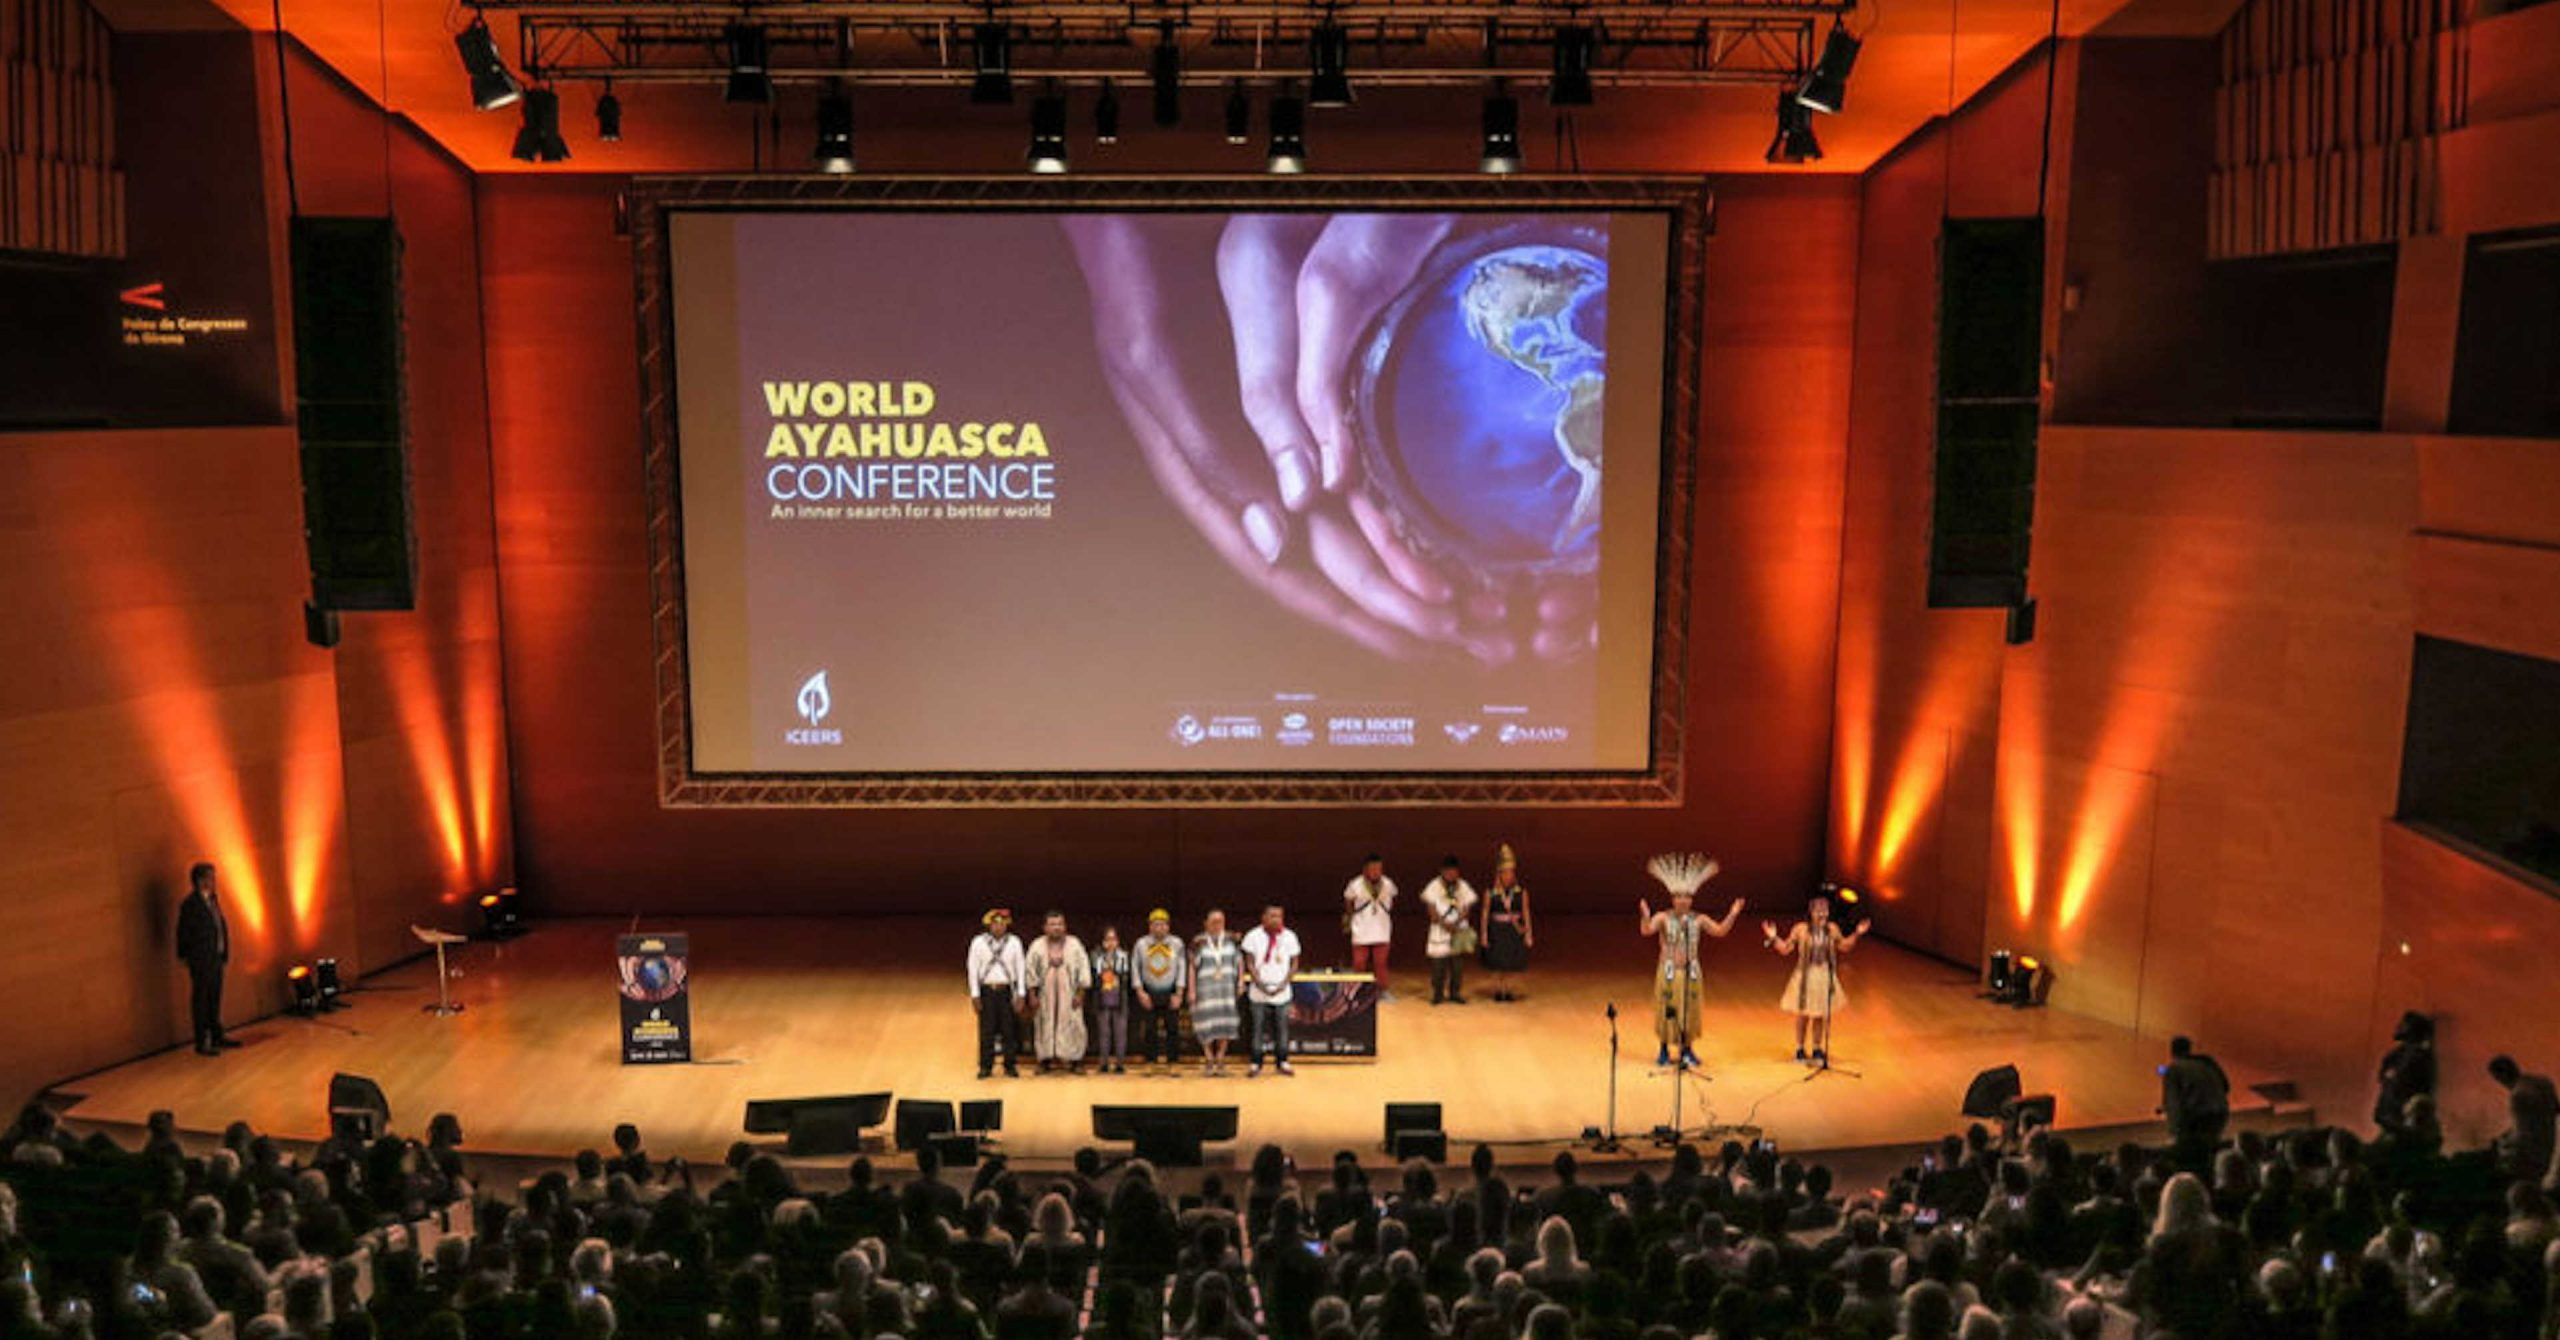 2019 – The Third World Ayahuasca Conference, Girona, Spain